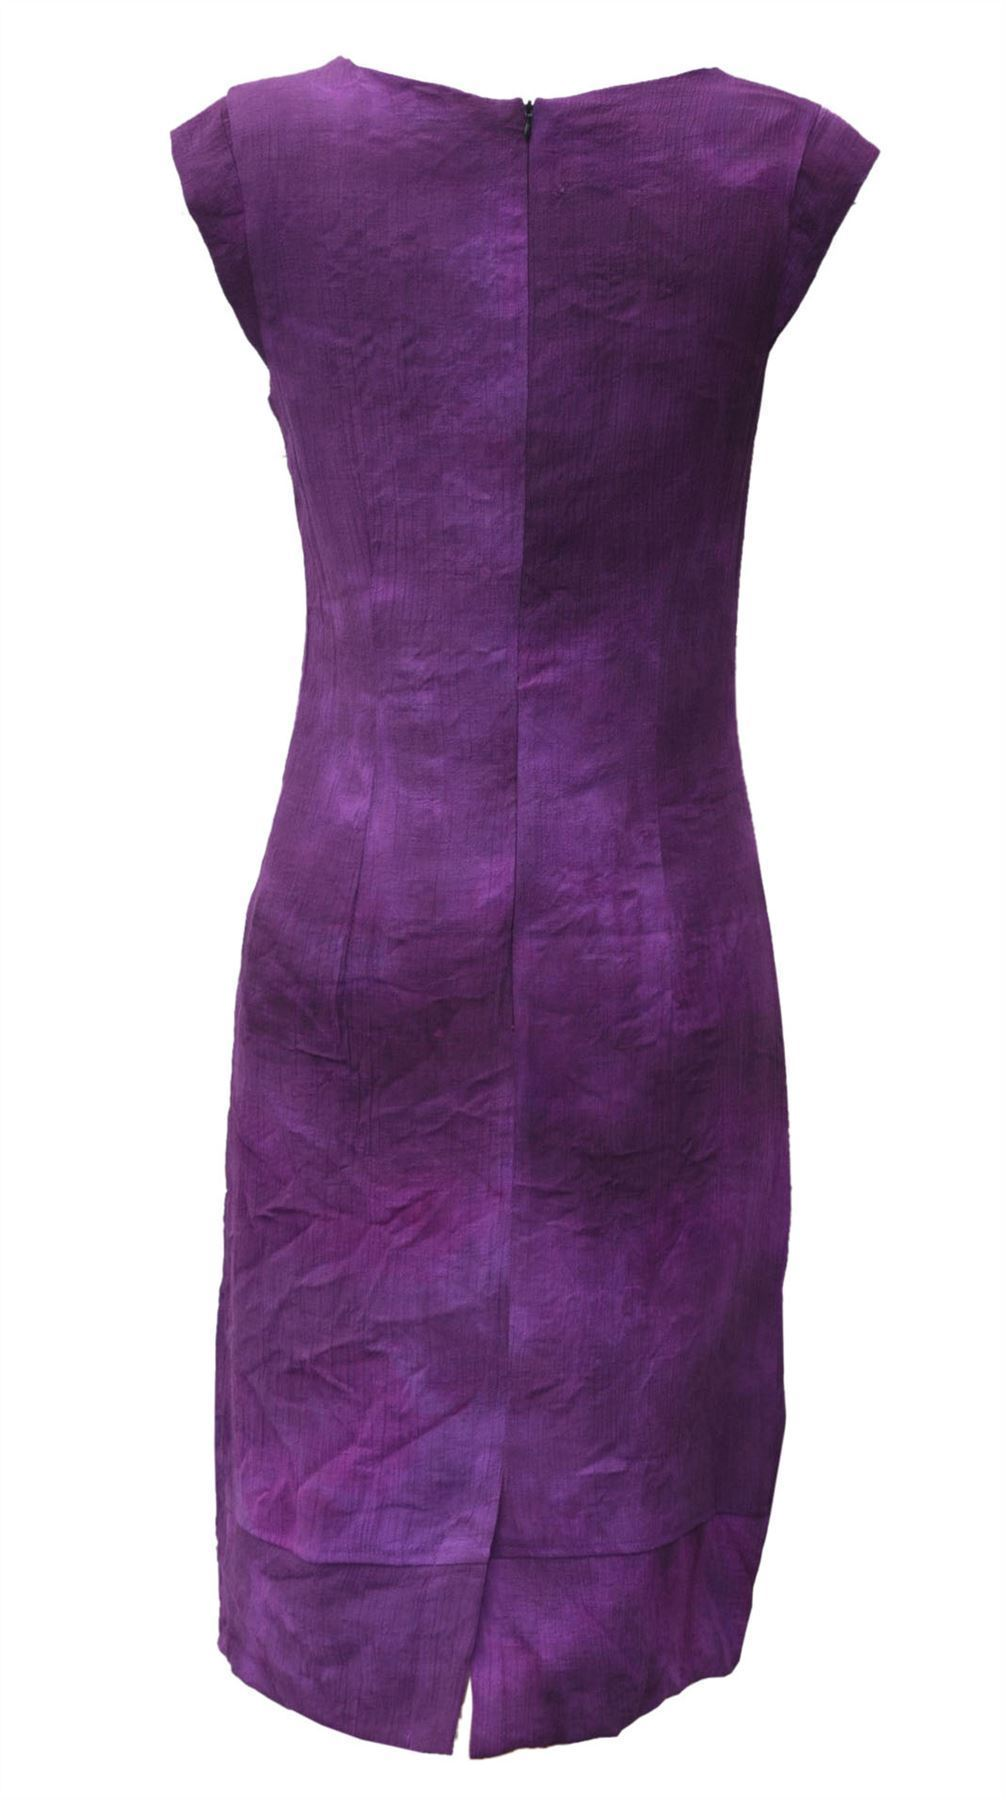 Sleeveless-Office-Silk-Shift-Dress-Work-Green-or-Purple-Size-8-10-12-16 thumbnail 10